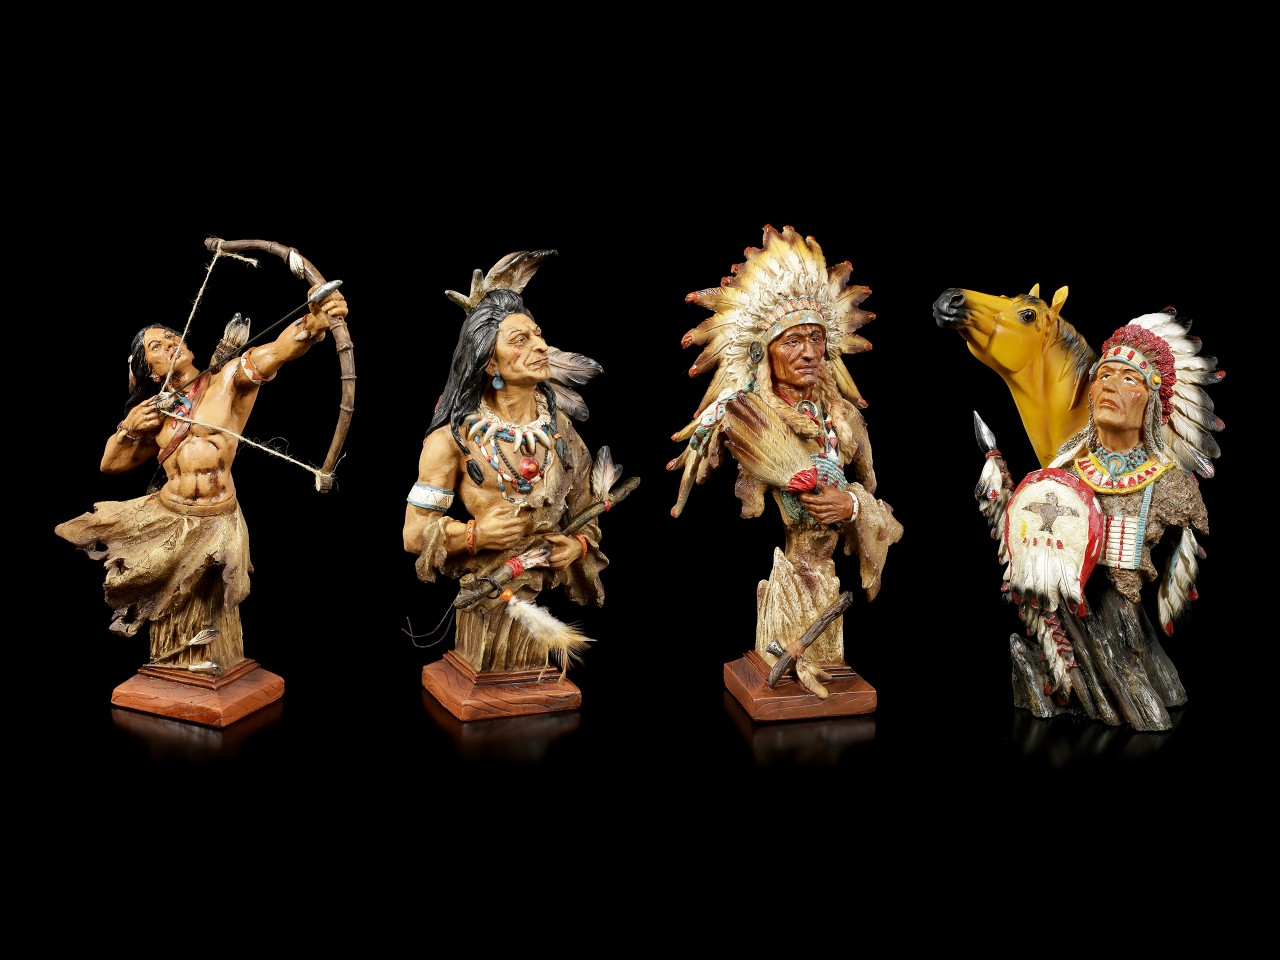 Indianer Figuren - 4er Set